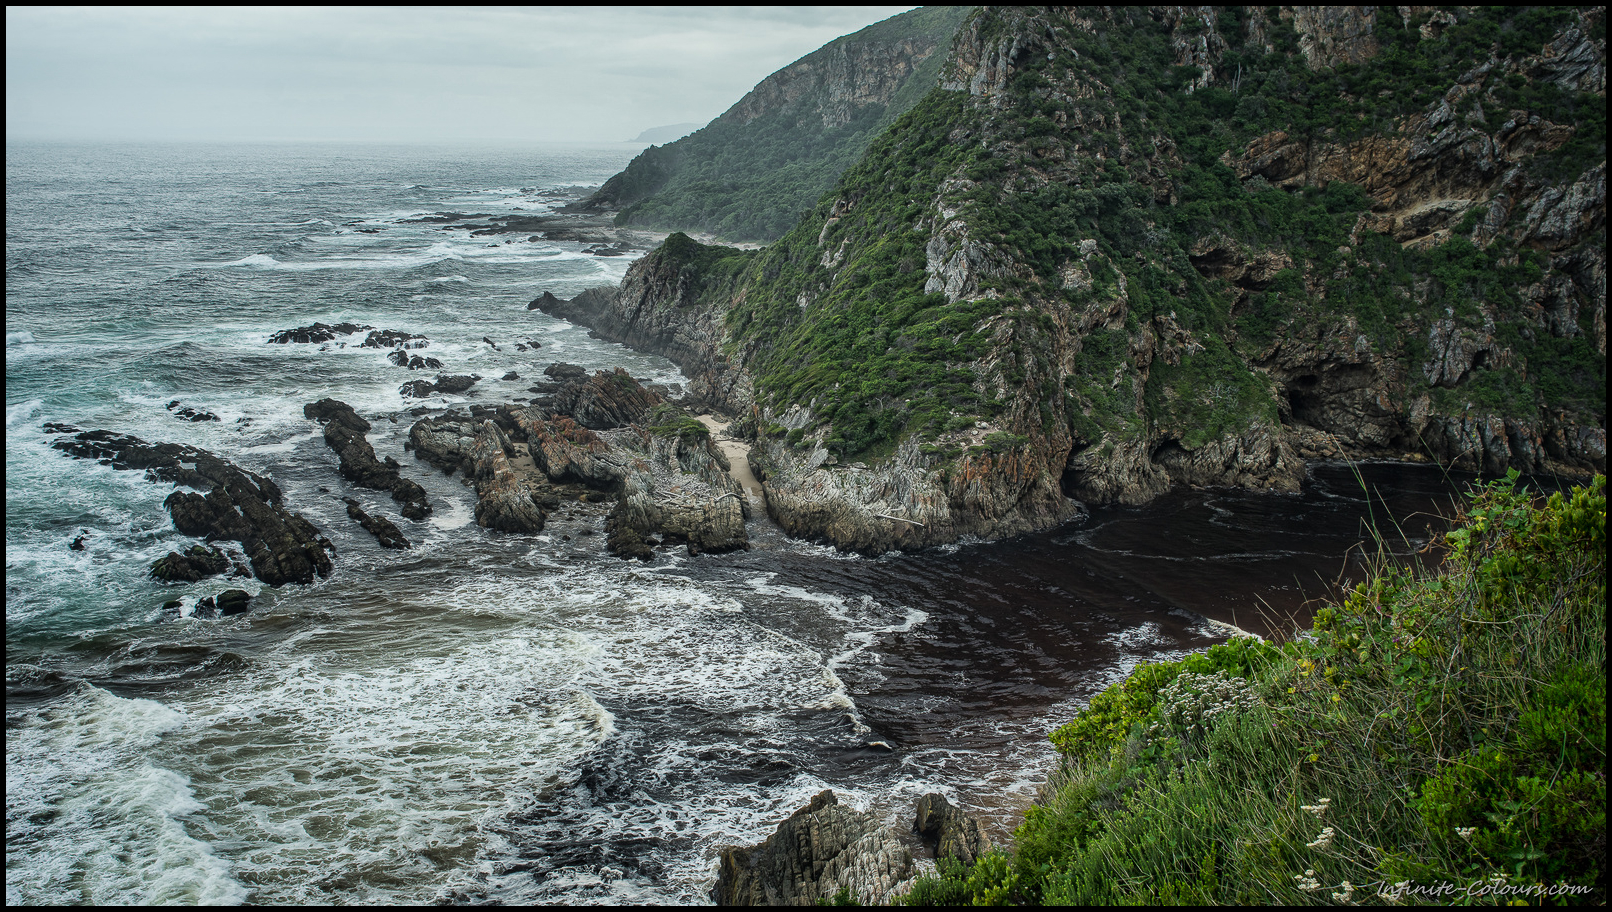 Even at lowtide, the Bloukrans greeted us with rough waves crashing in